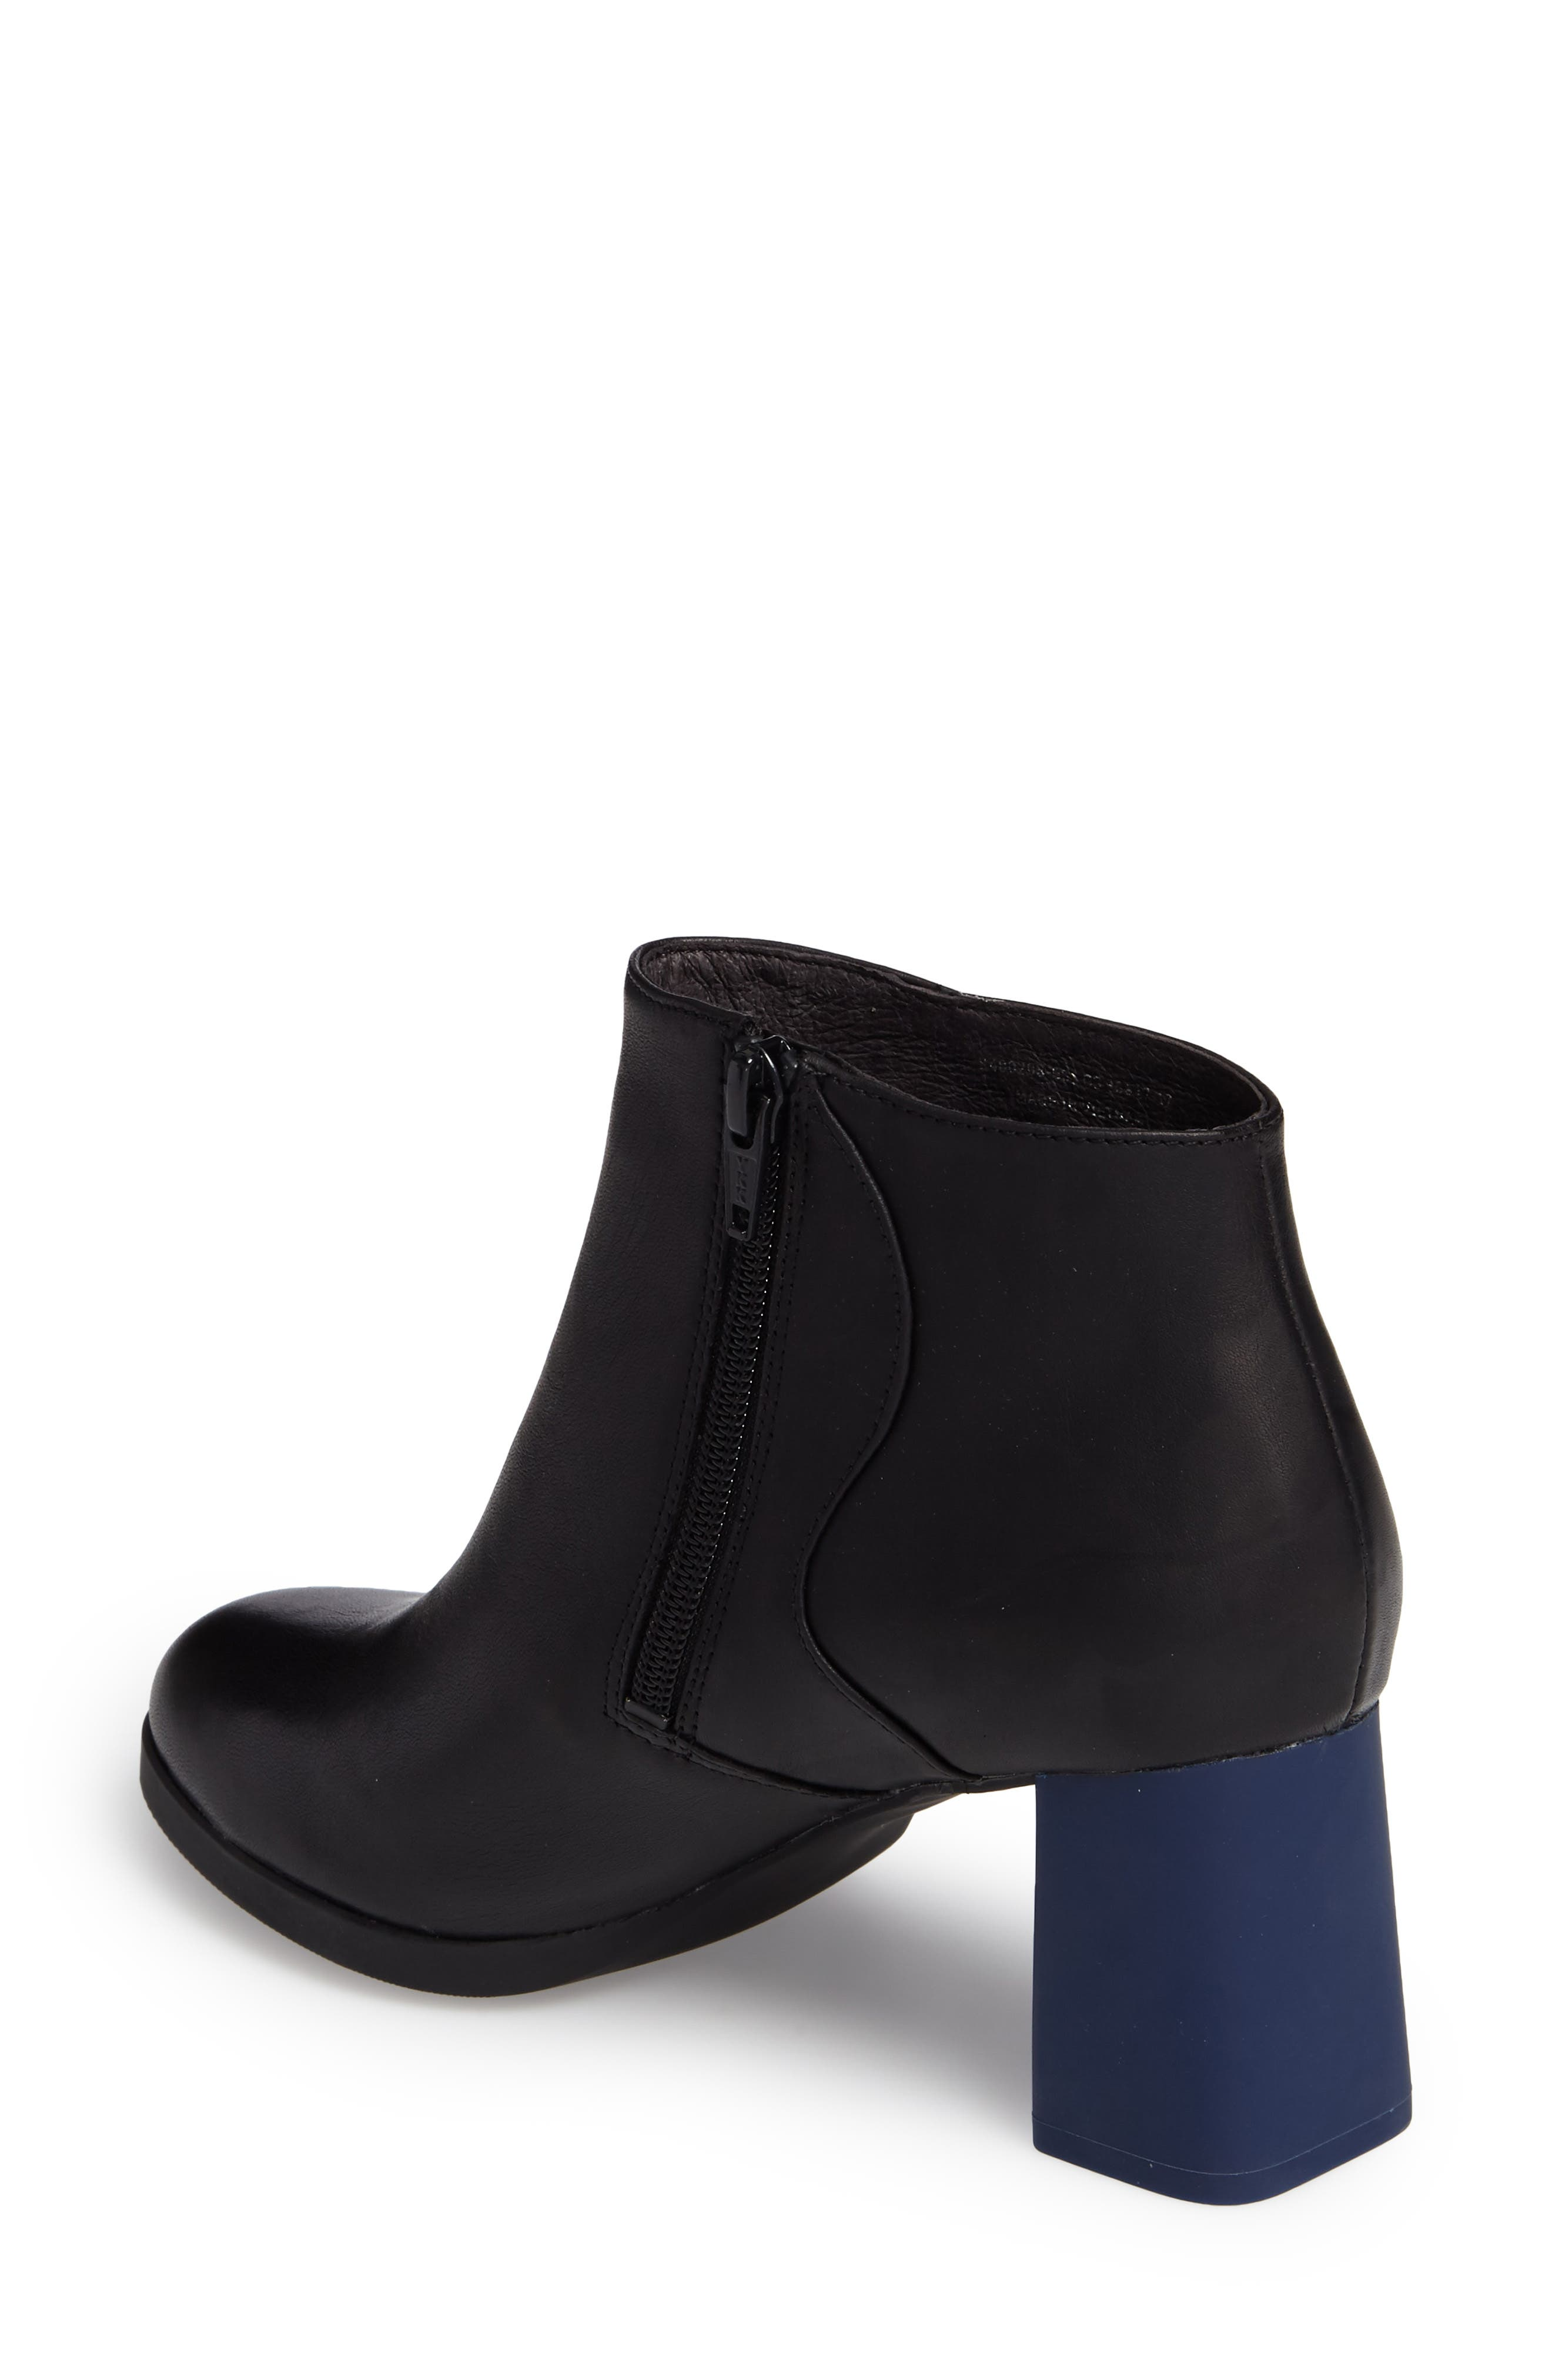 Kara Flared Heel Bootie,                             Alternate thumbnail 2, color,                             001